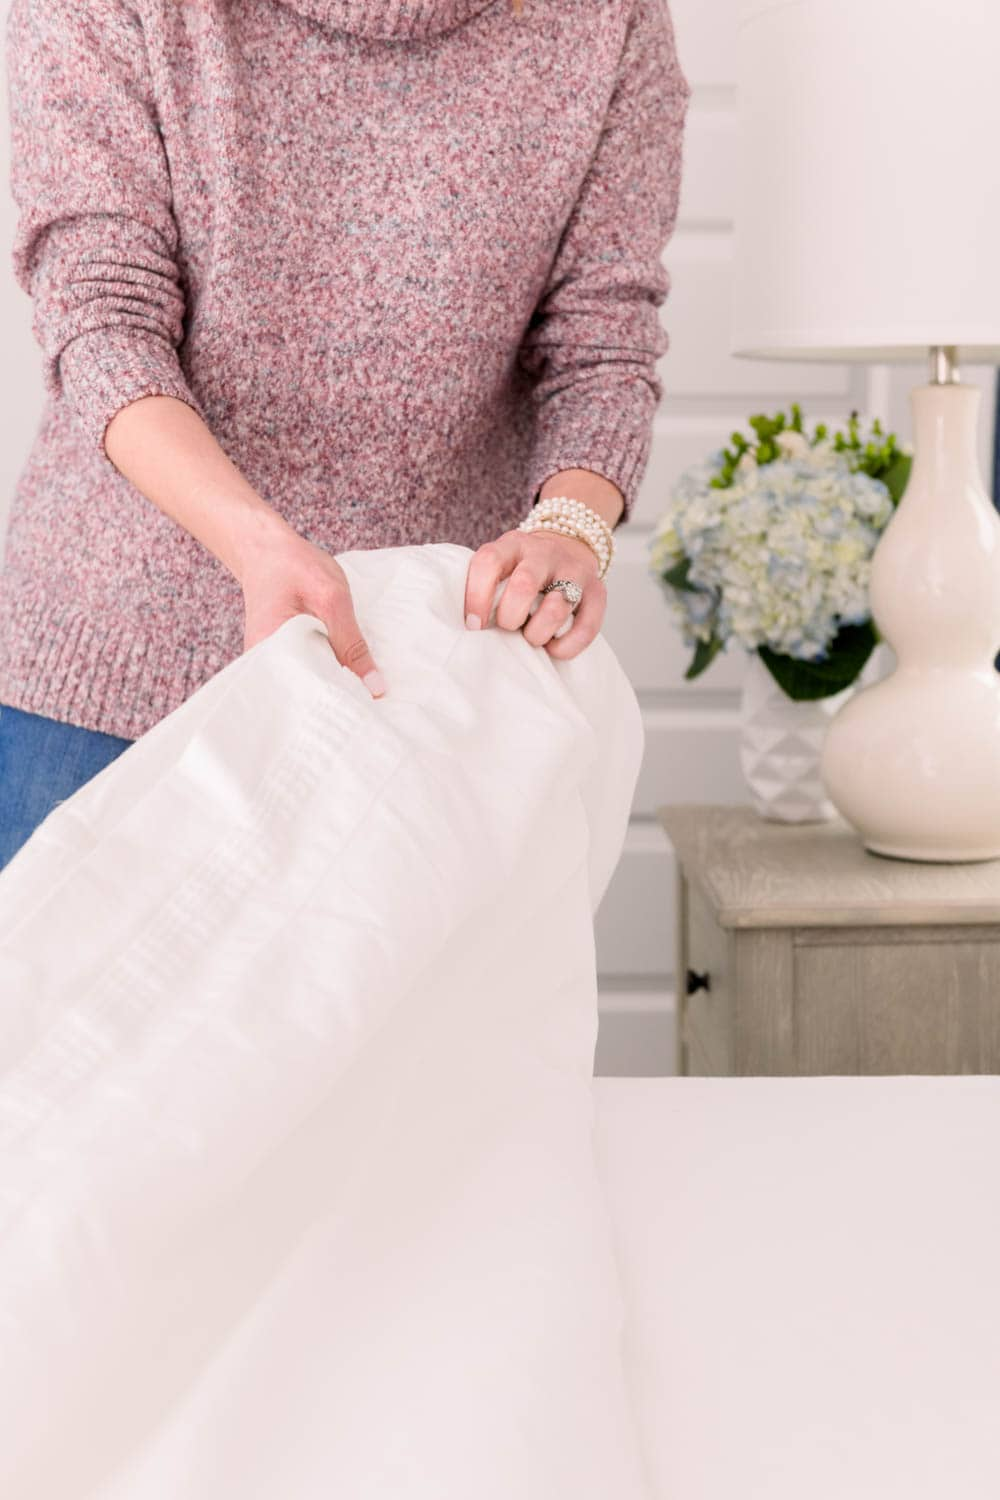 Crisp sheets make all the difference when making a cozy warm bed. #ABlissfulNest #bedding #beddingideas